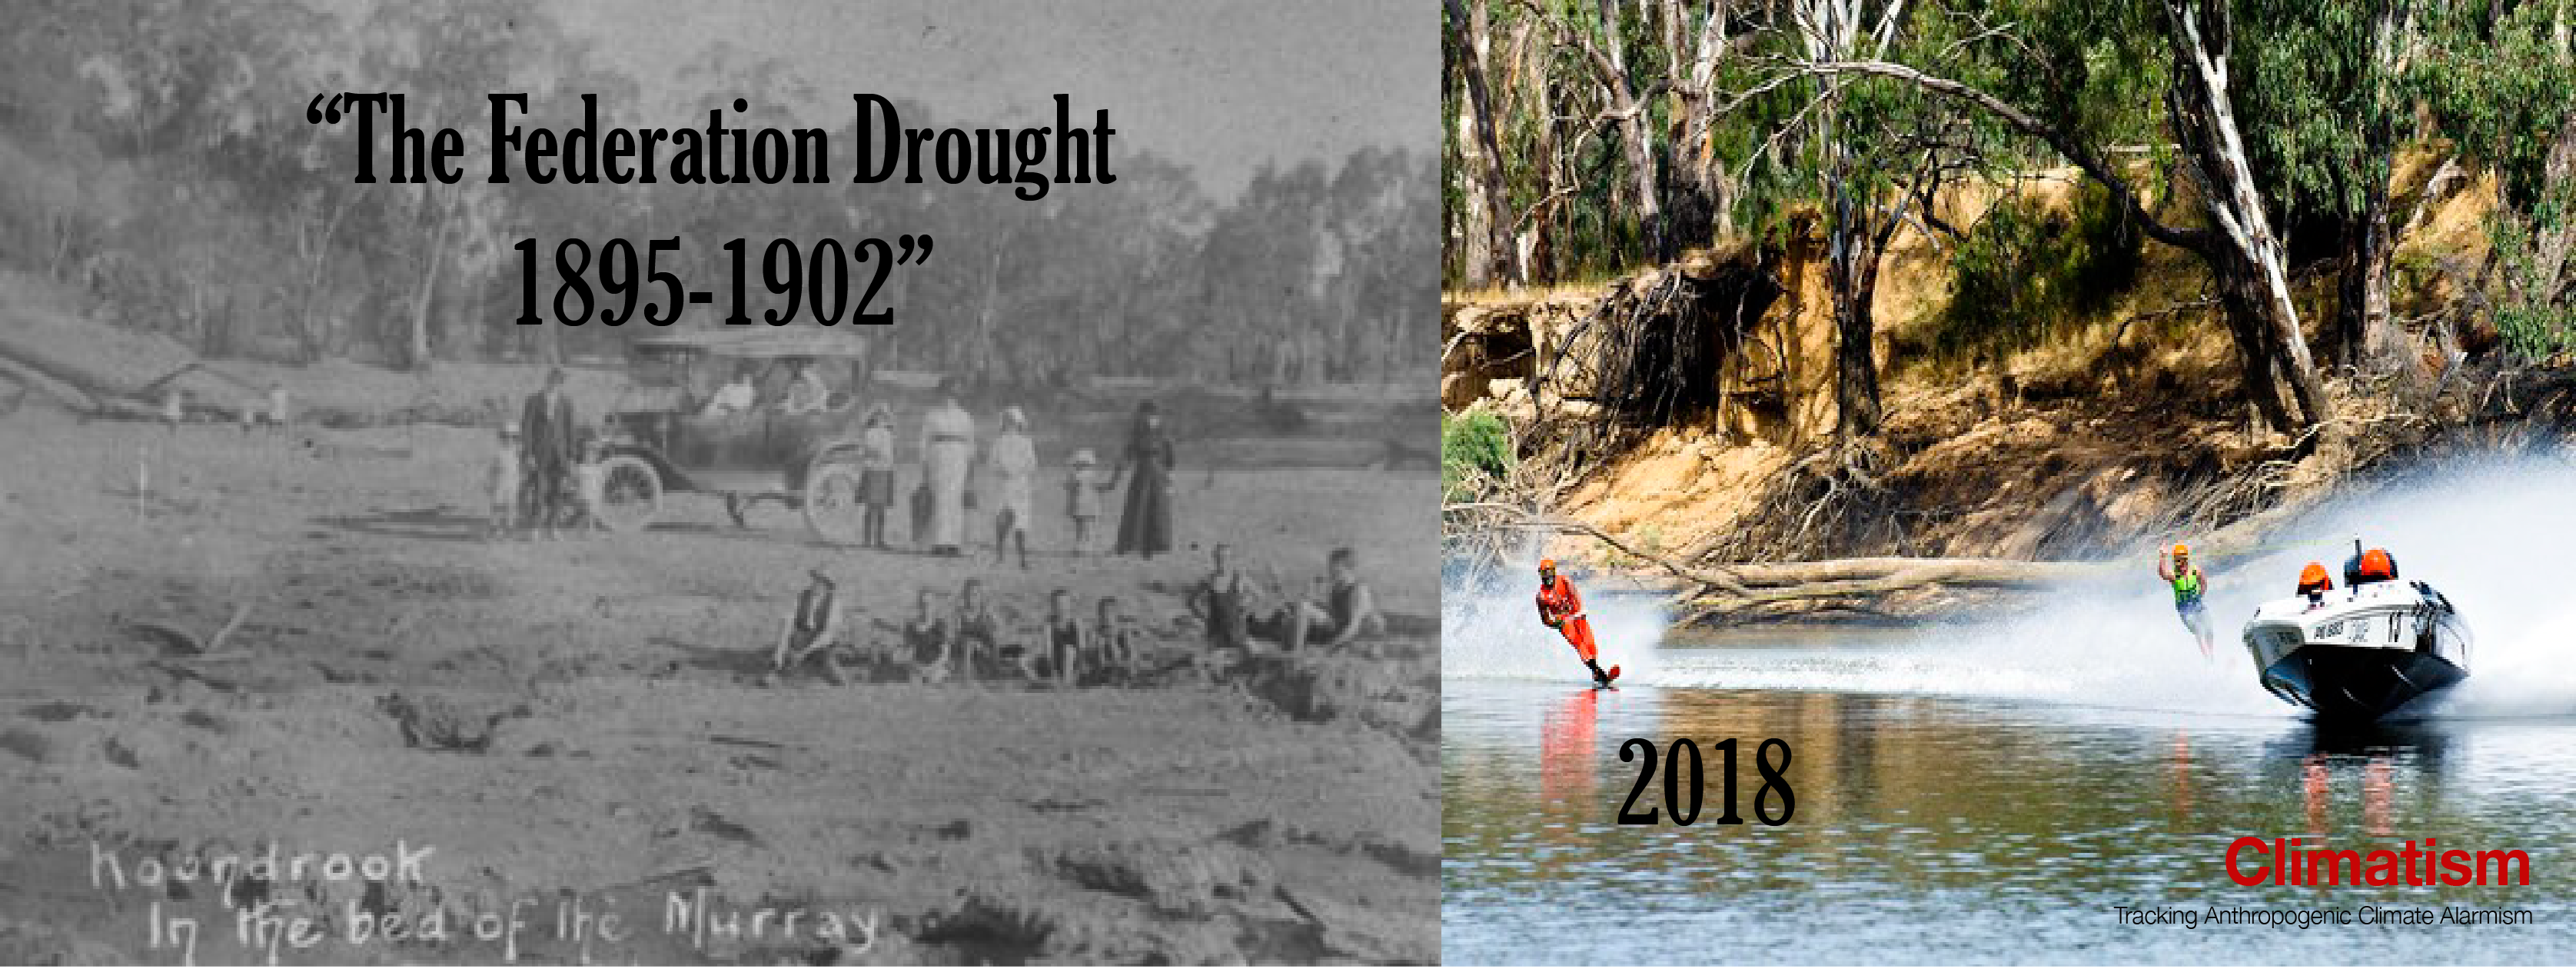 THE Federation Drought - Open Letter To BoM - CLIMATISM